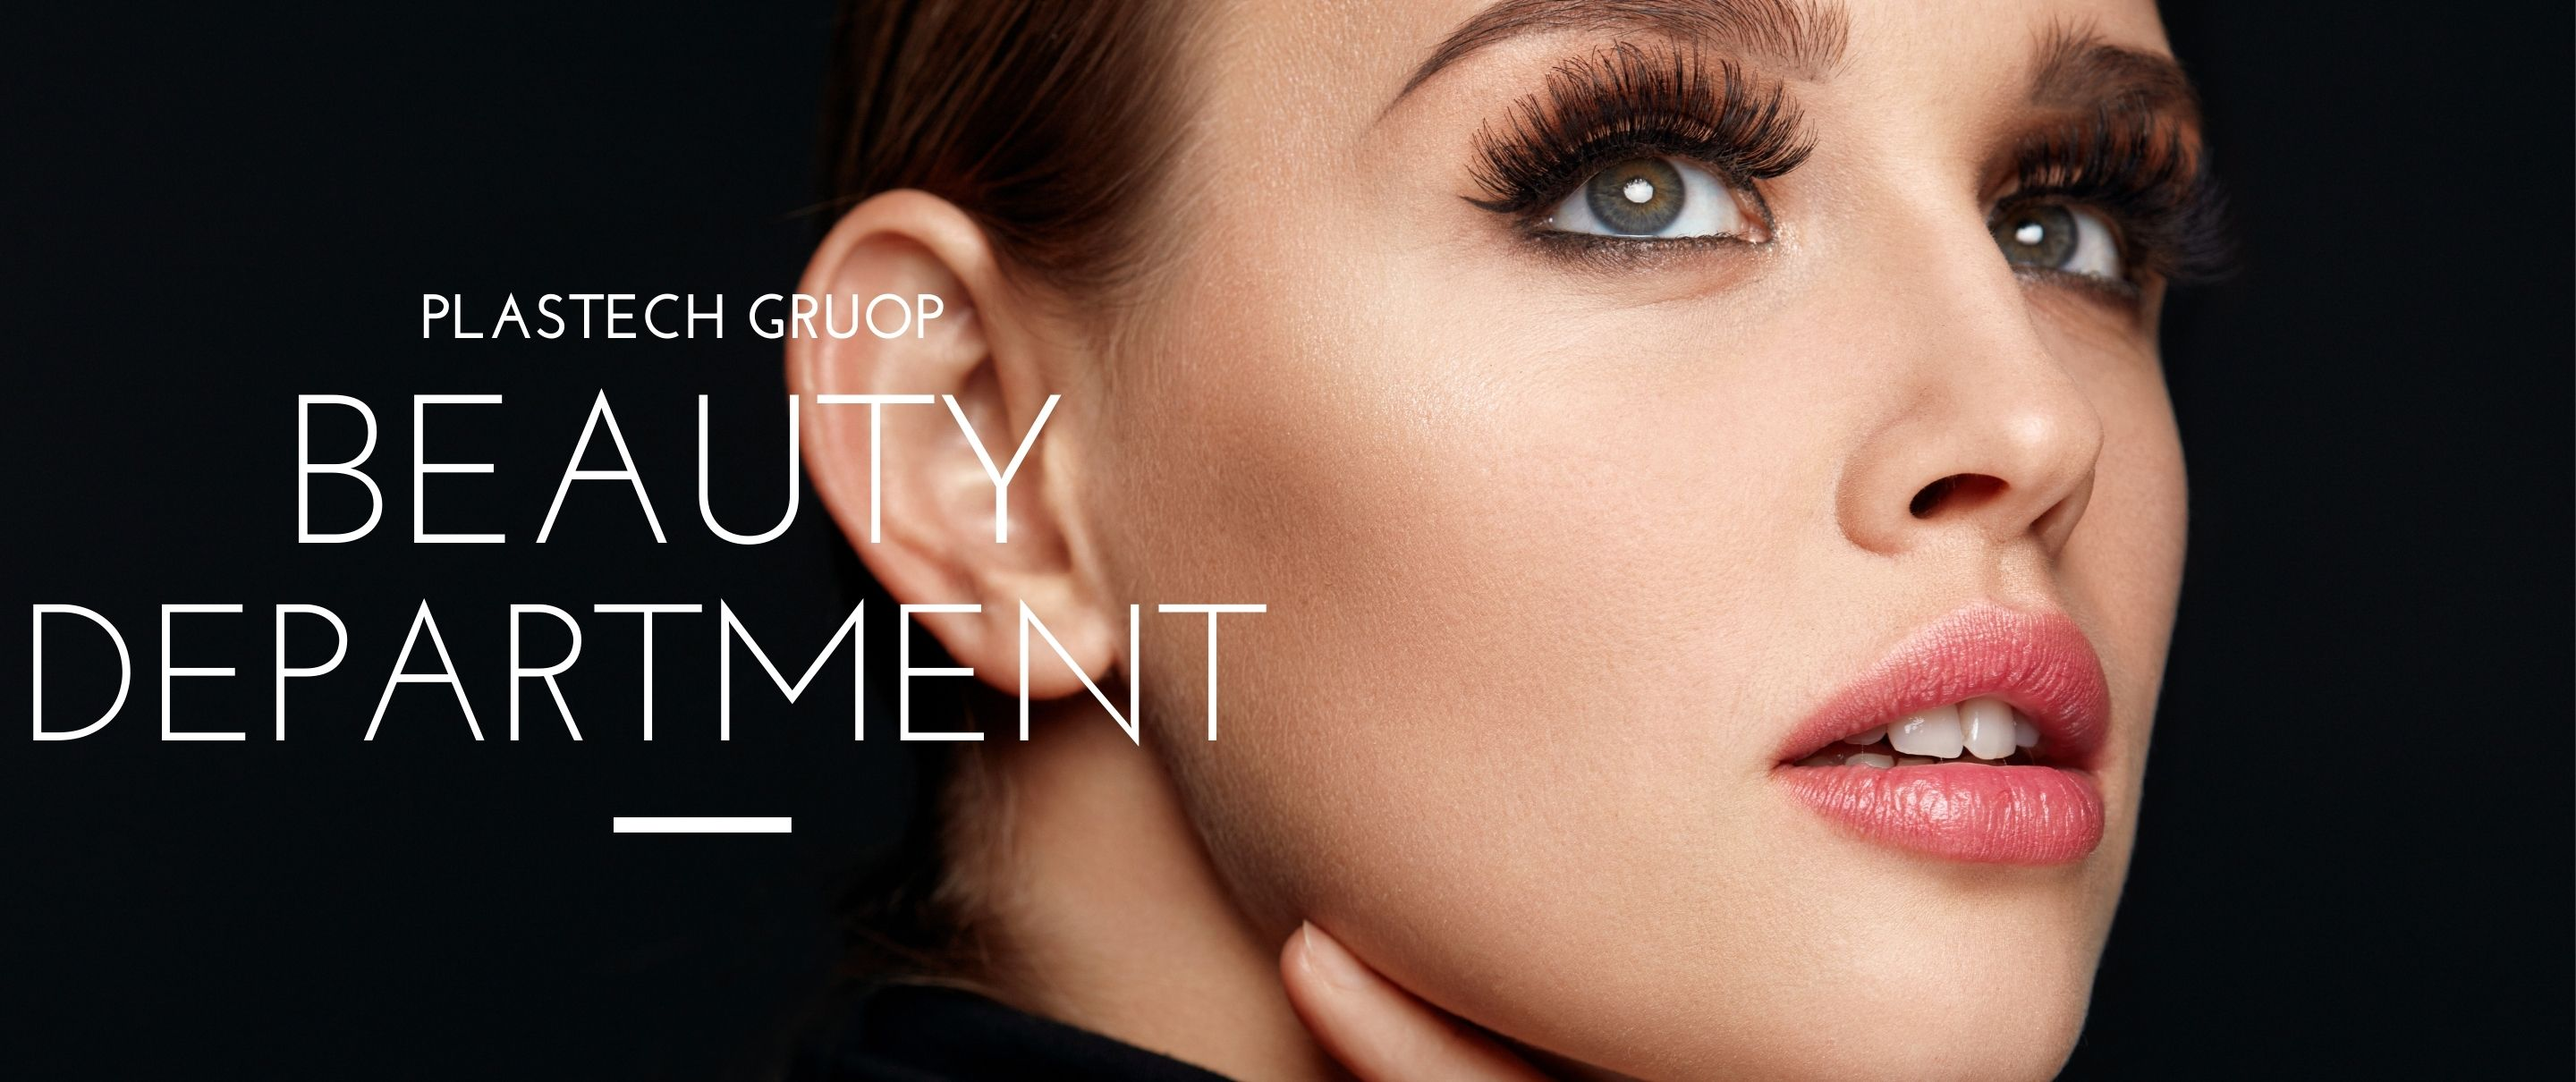 PLASTECH GROUP - BEAUTY DEPARTMENT